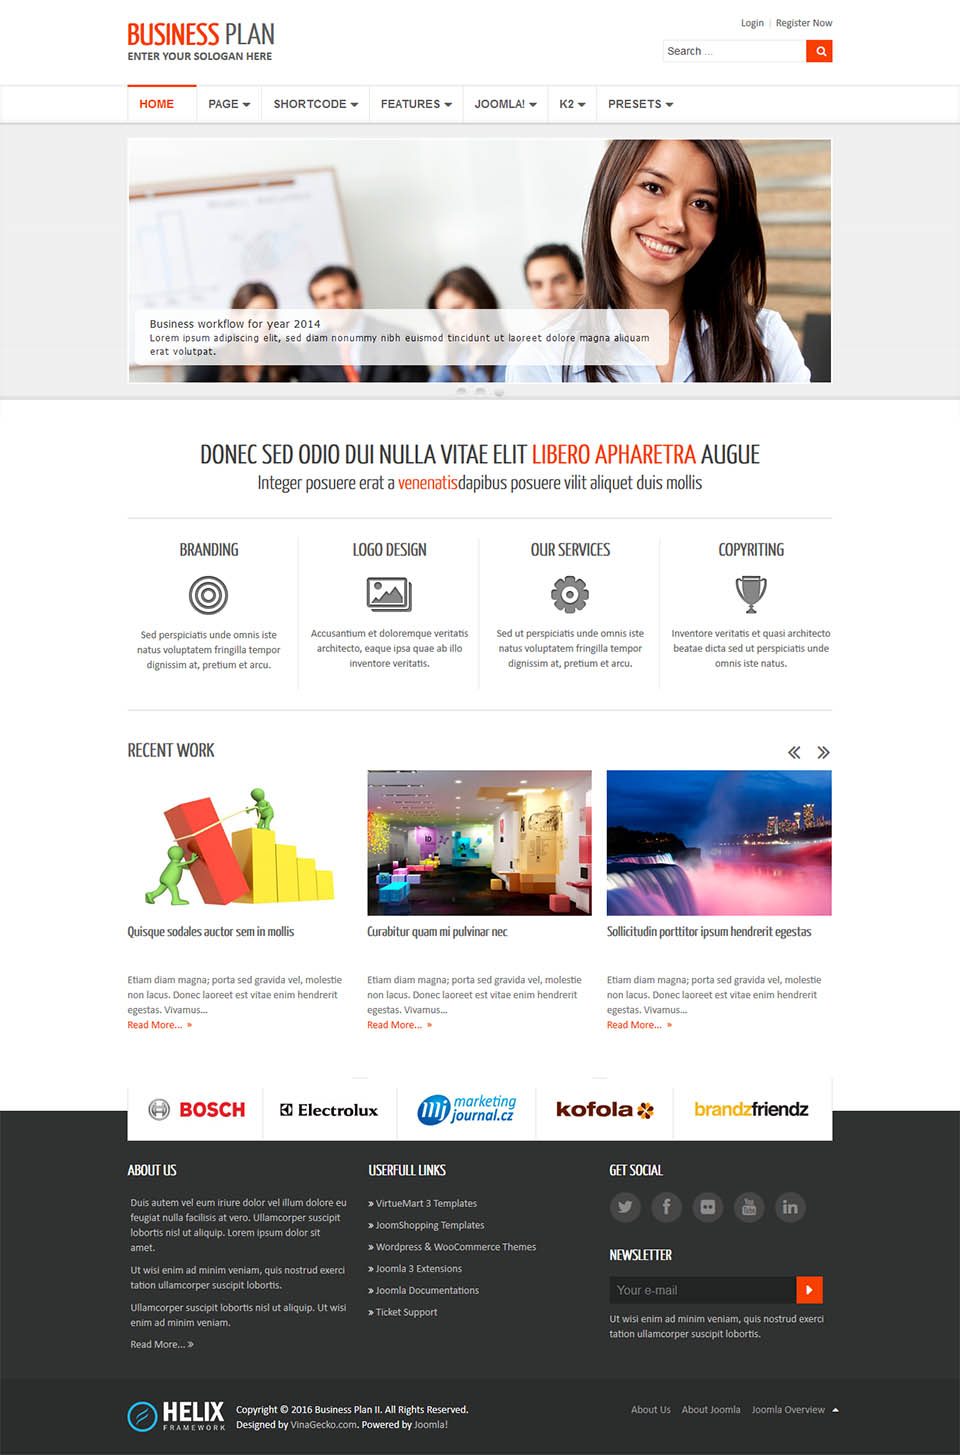 Vinagecko business plan ii v130 free responsive business joomla template for joomla vinagecko business plan ii free download cheaphphosting Images